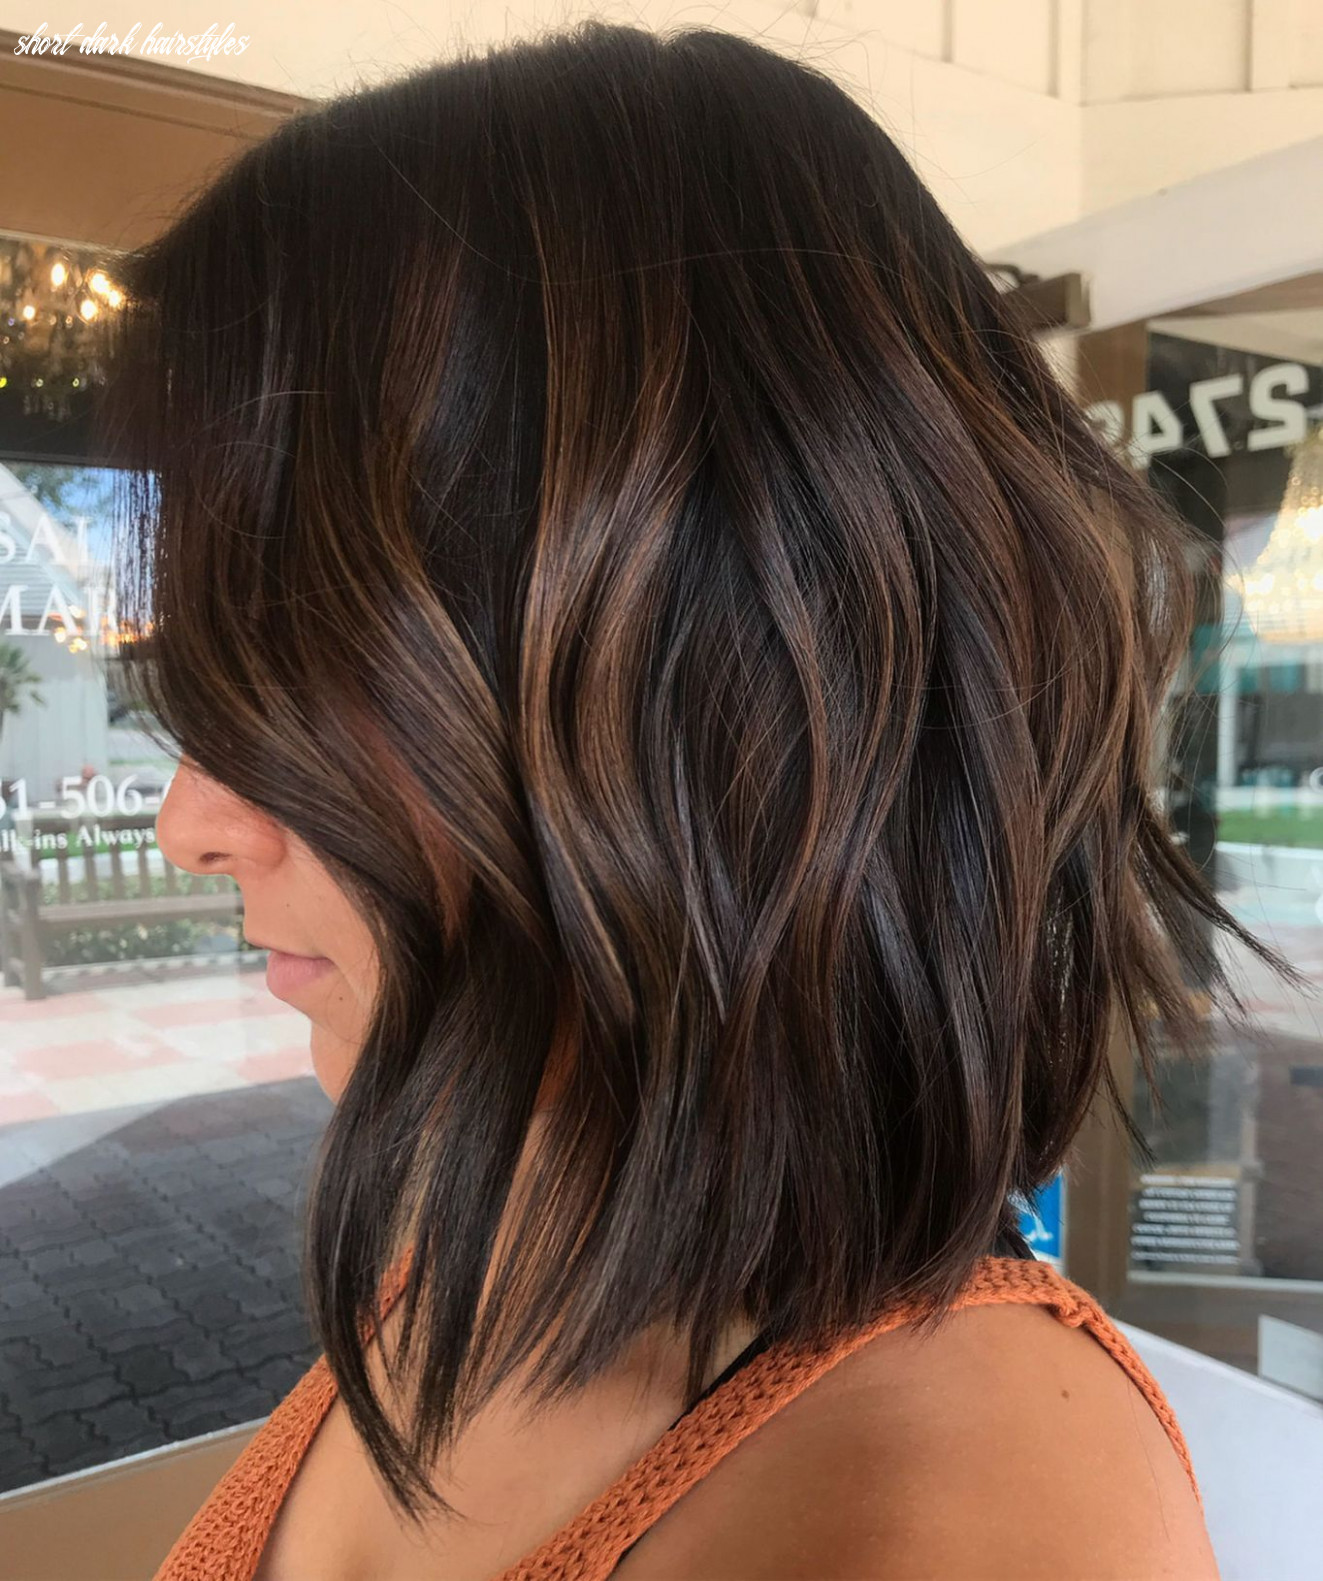 9 hairstyles featuring dark brown hair with highlights | short